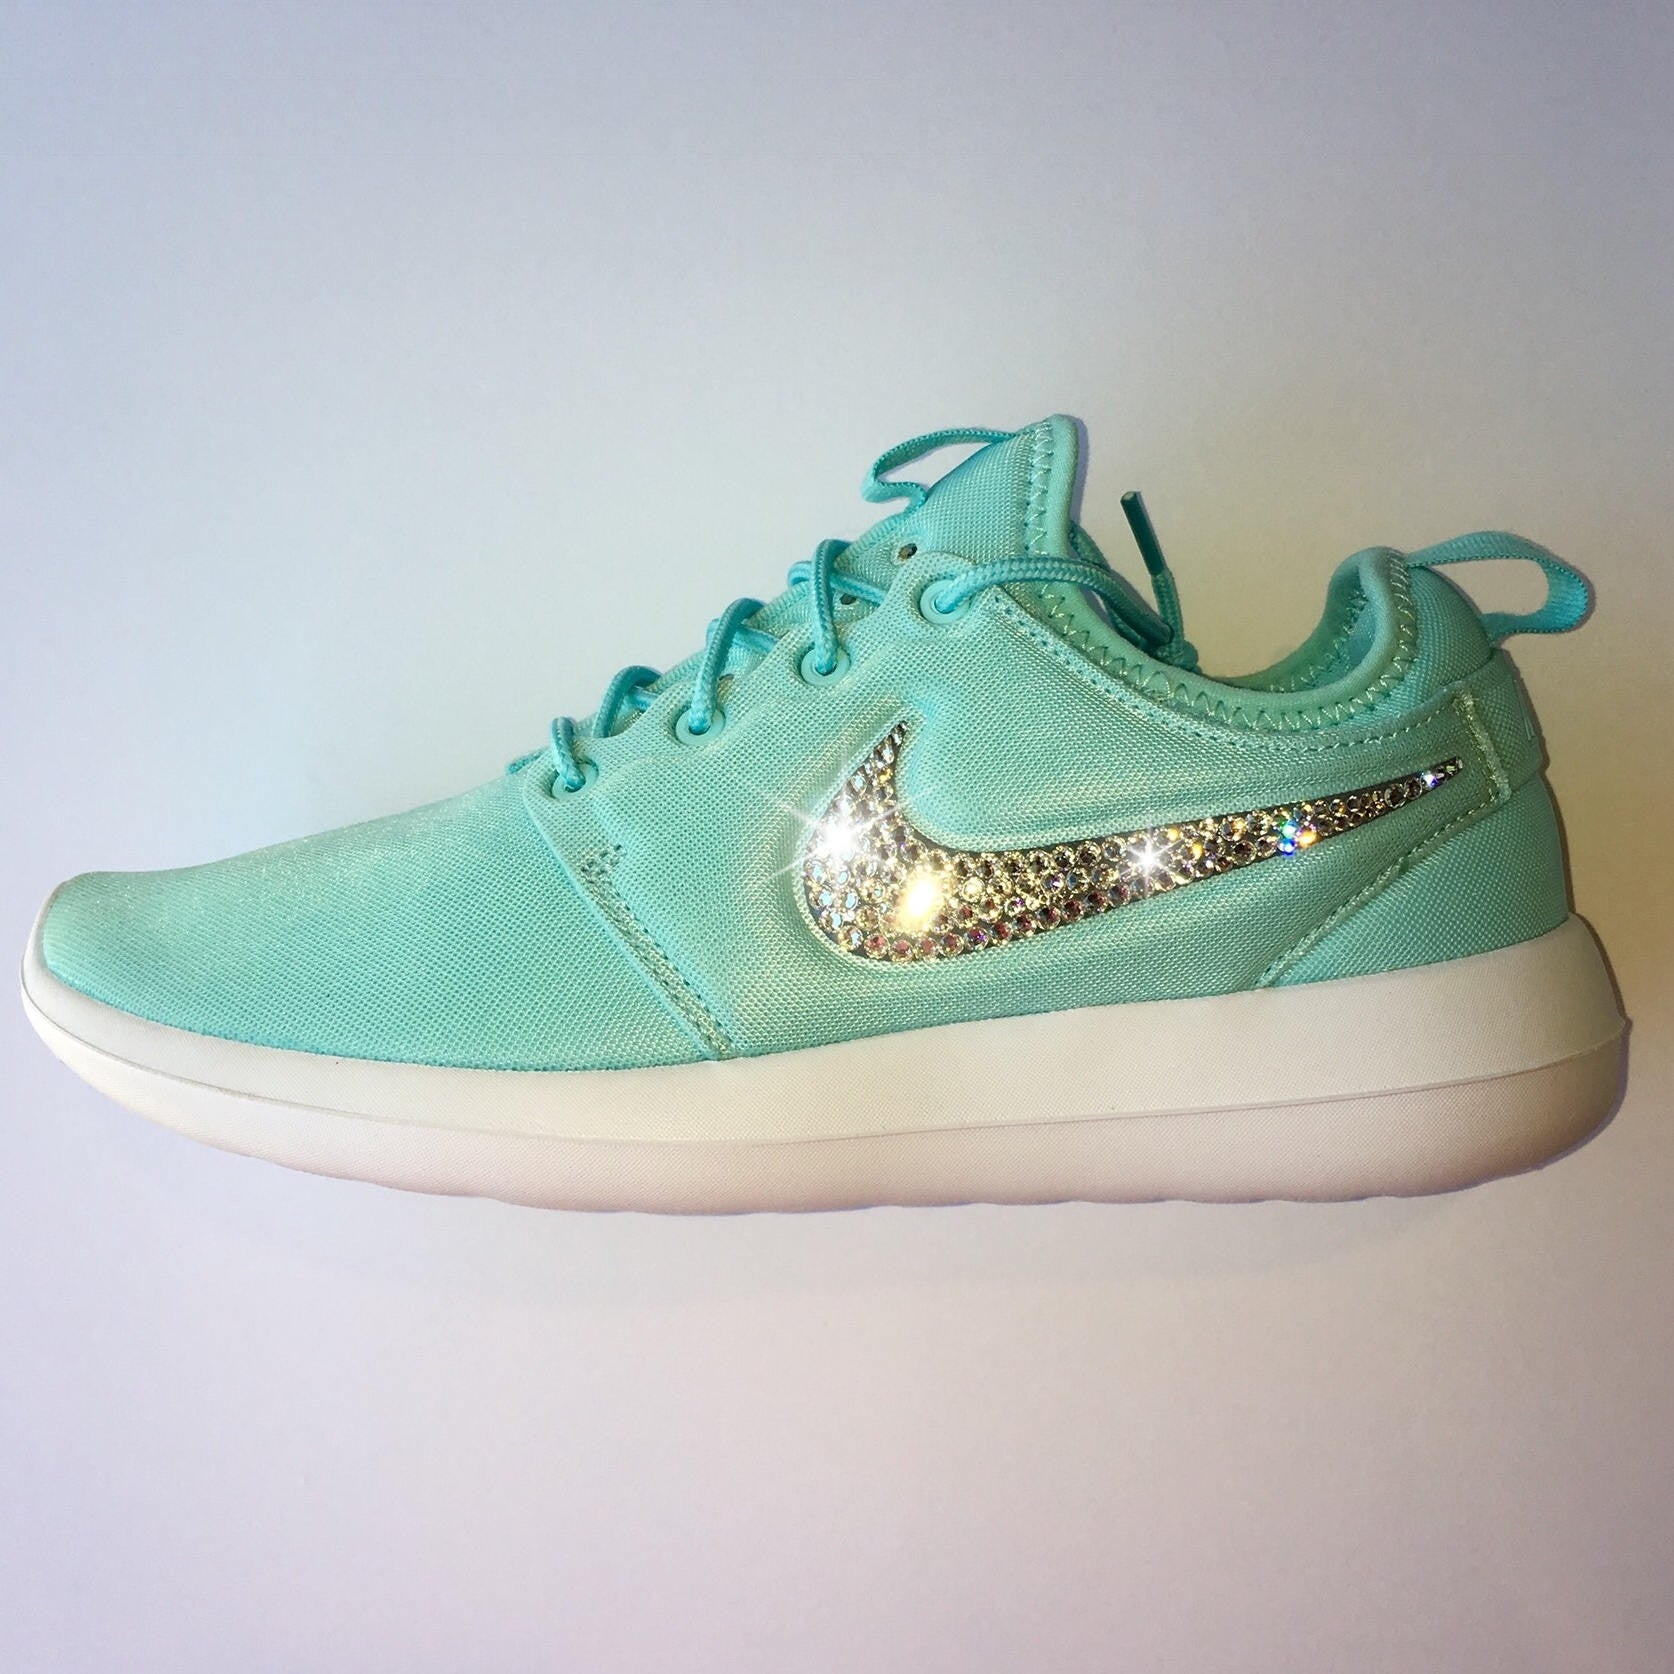 6a0b6b66e1972 ... Bling Nike Roshe Two Women s Shoes - Tiffany Blue - Bedazzled with Real  Swarovski Crystals ...